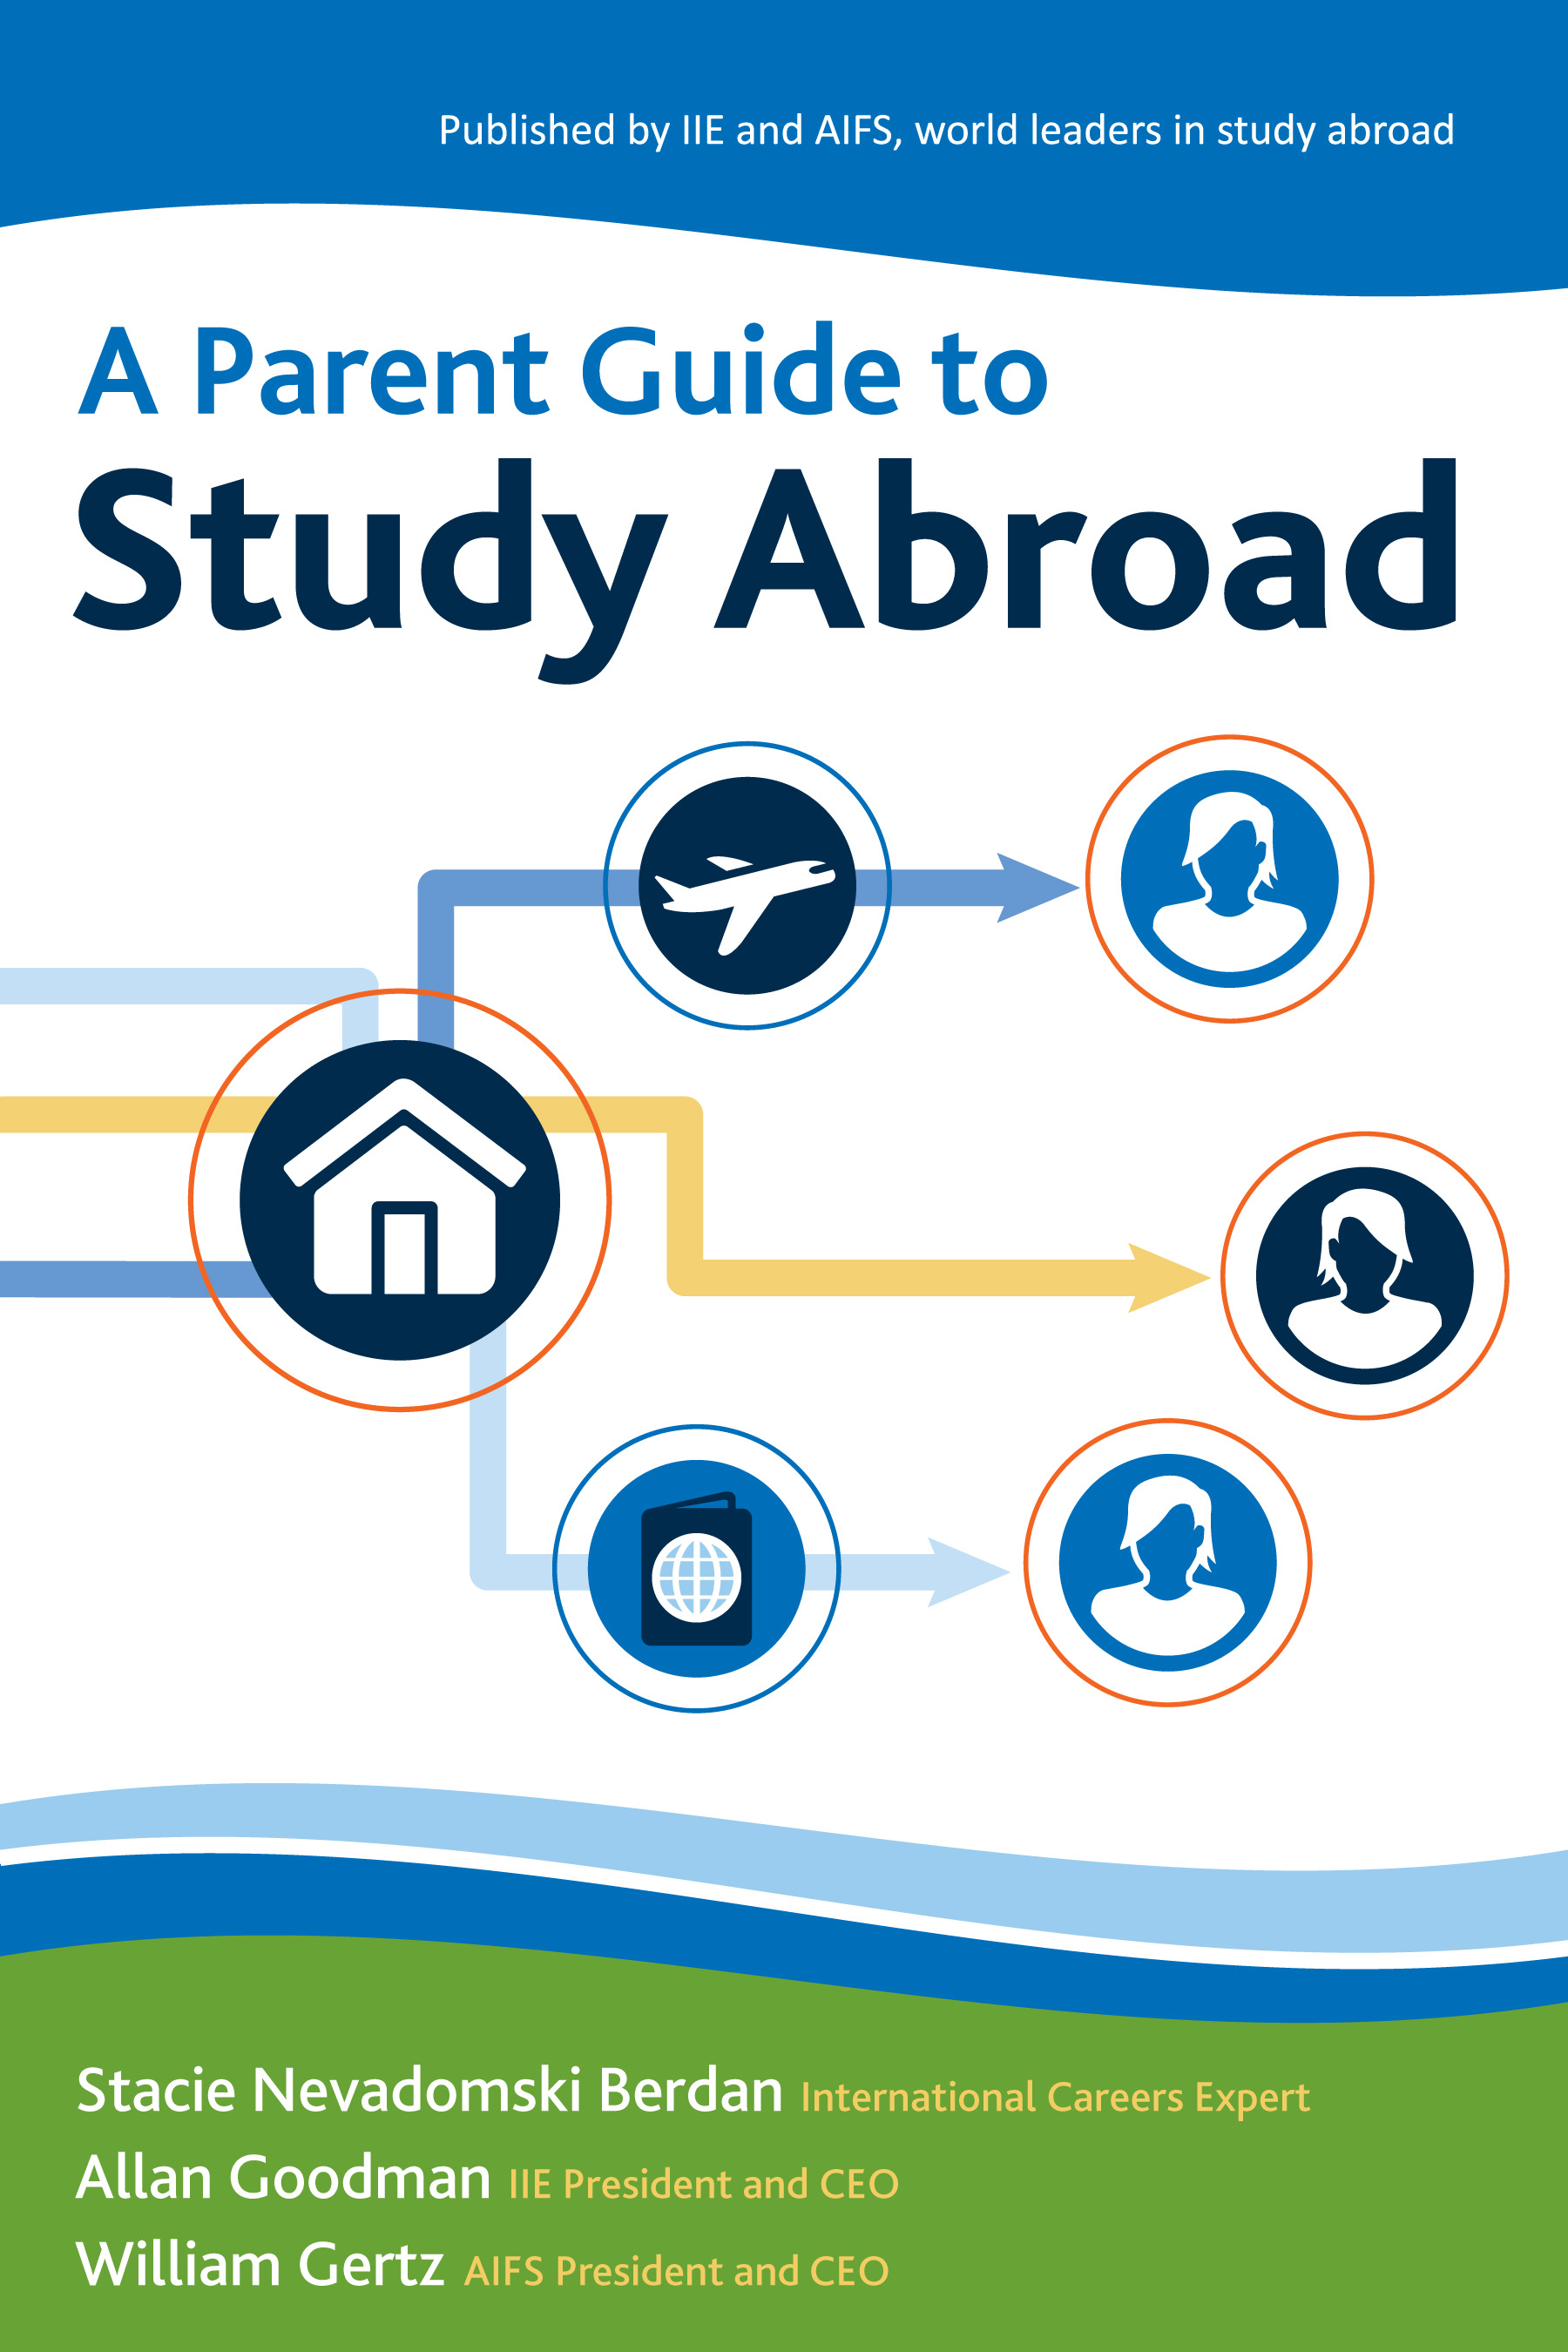 Study Abroad: Finally, Parents Are Now Part of the Picture